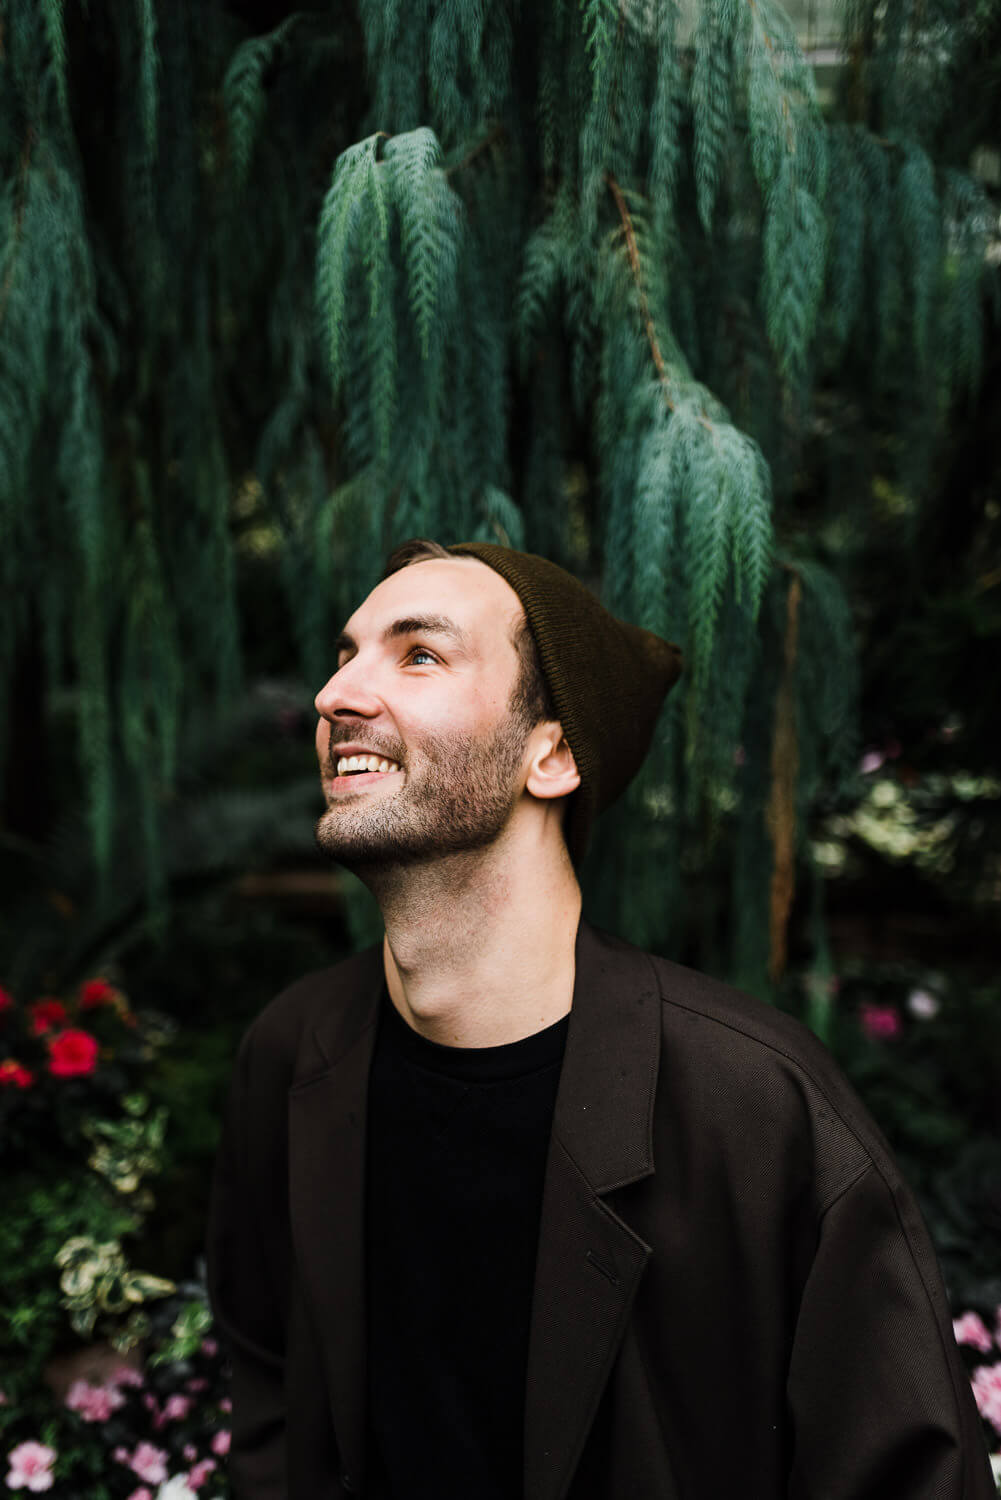 Young man wearing brown jacket and hat, laughing while surround by plants at Allan Gardens in Toronto